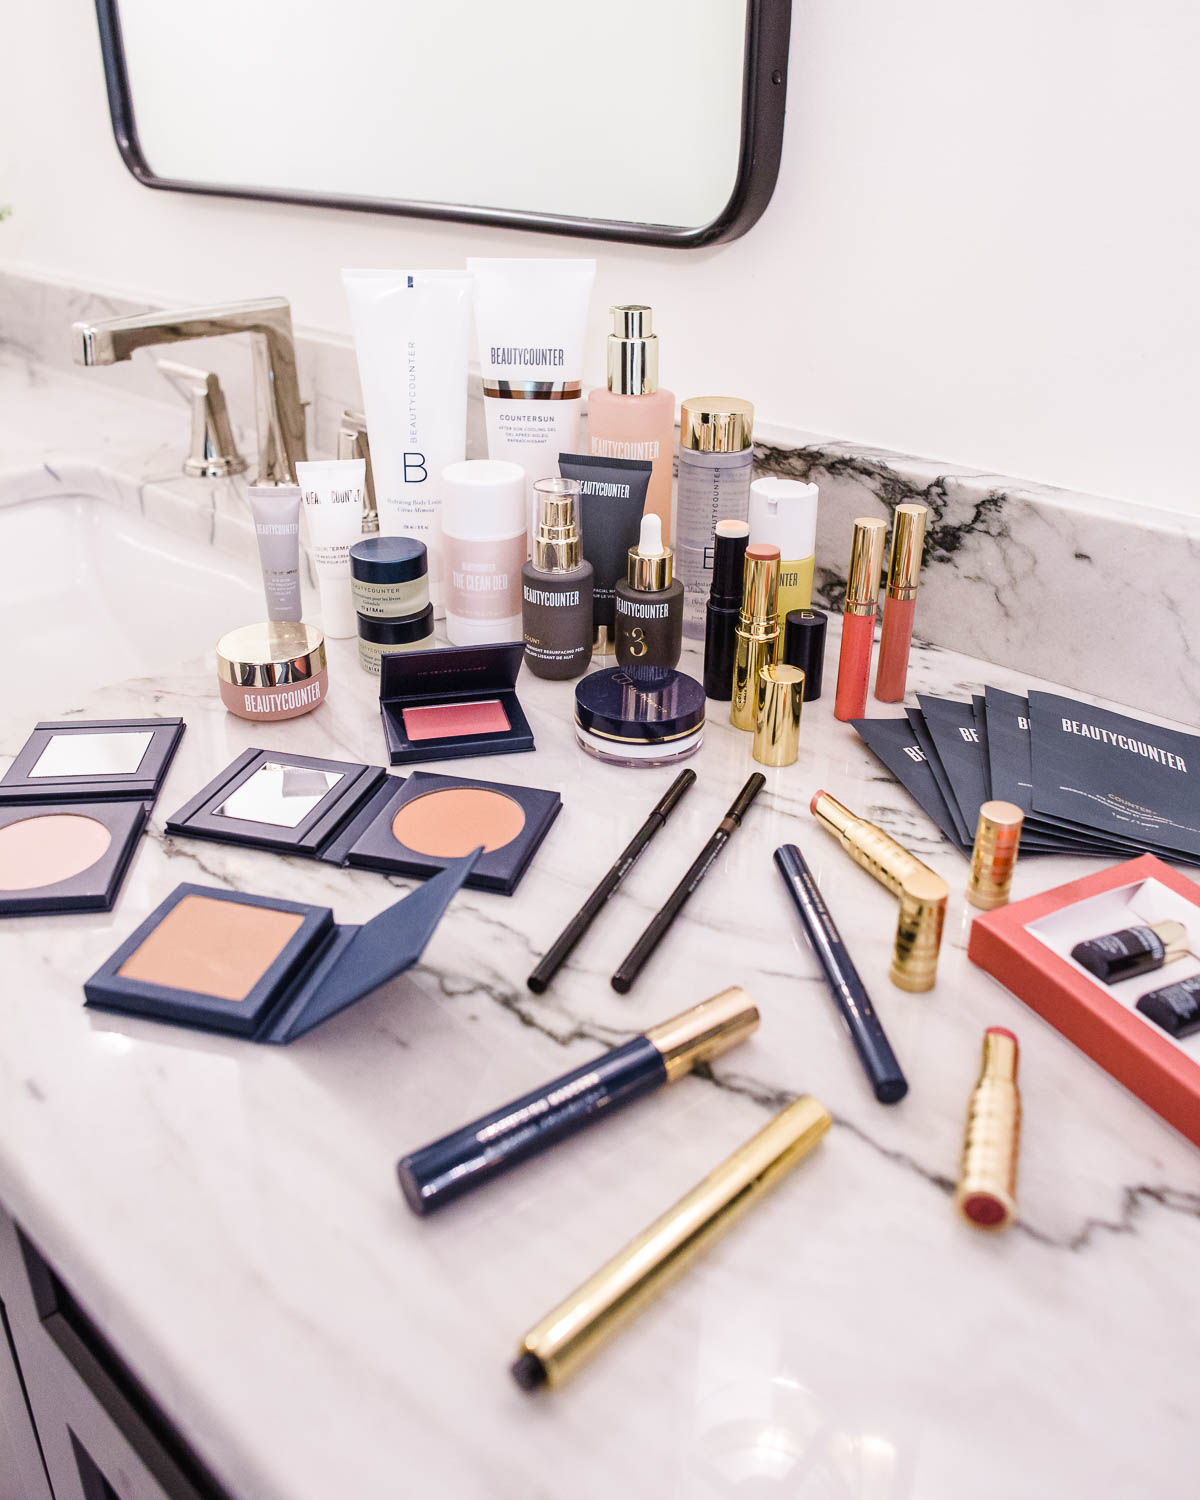 Honest and real review of Beautycounter products.